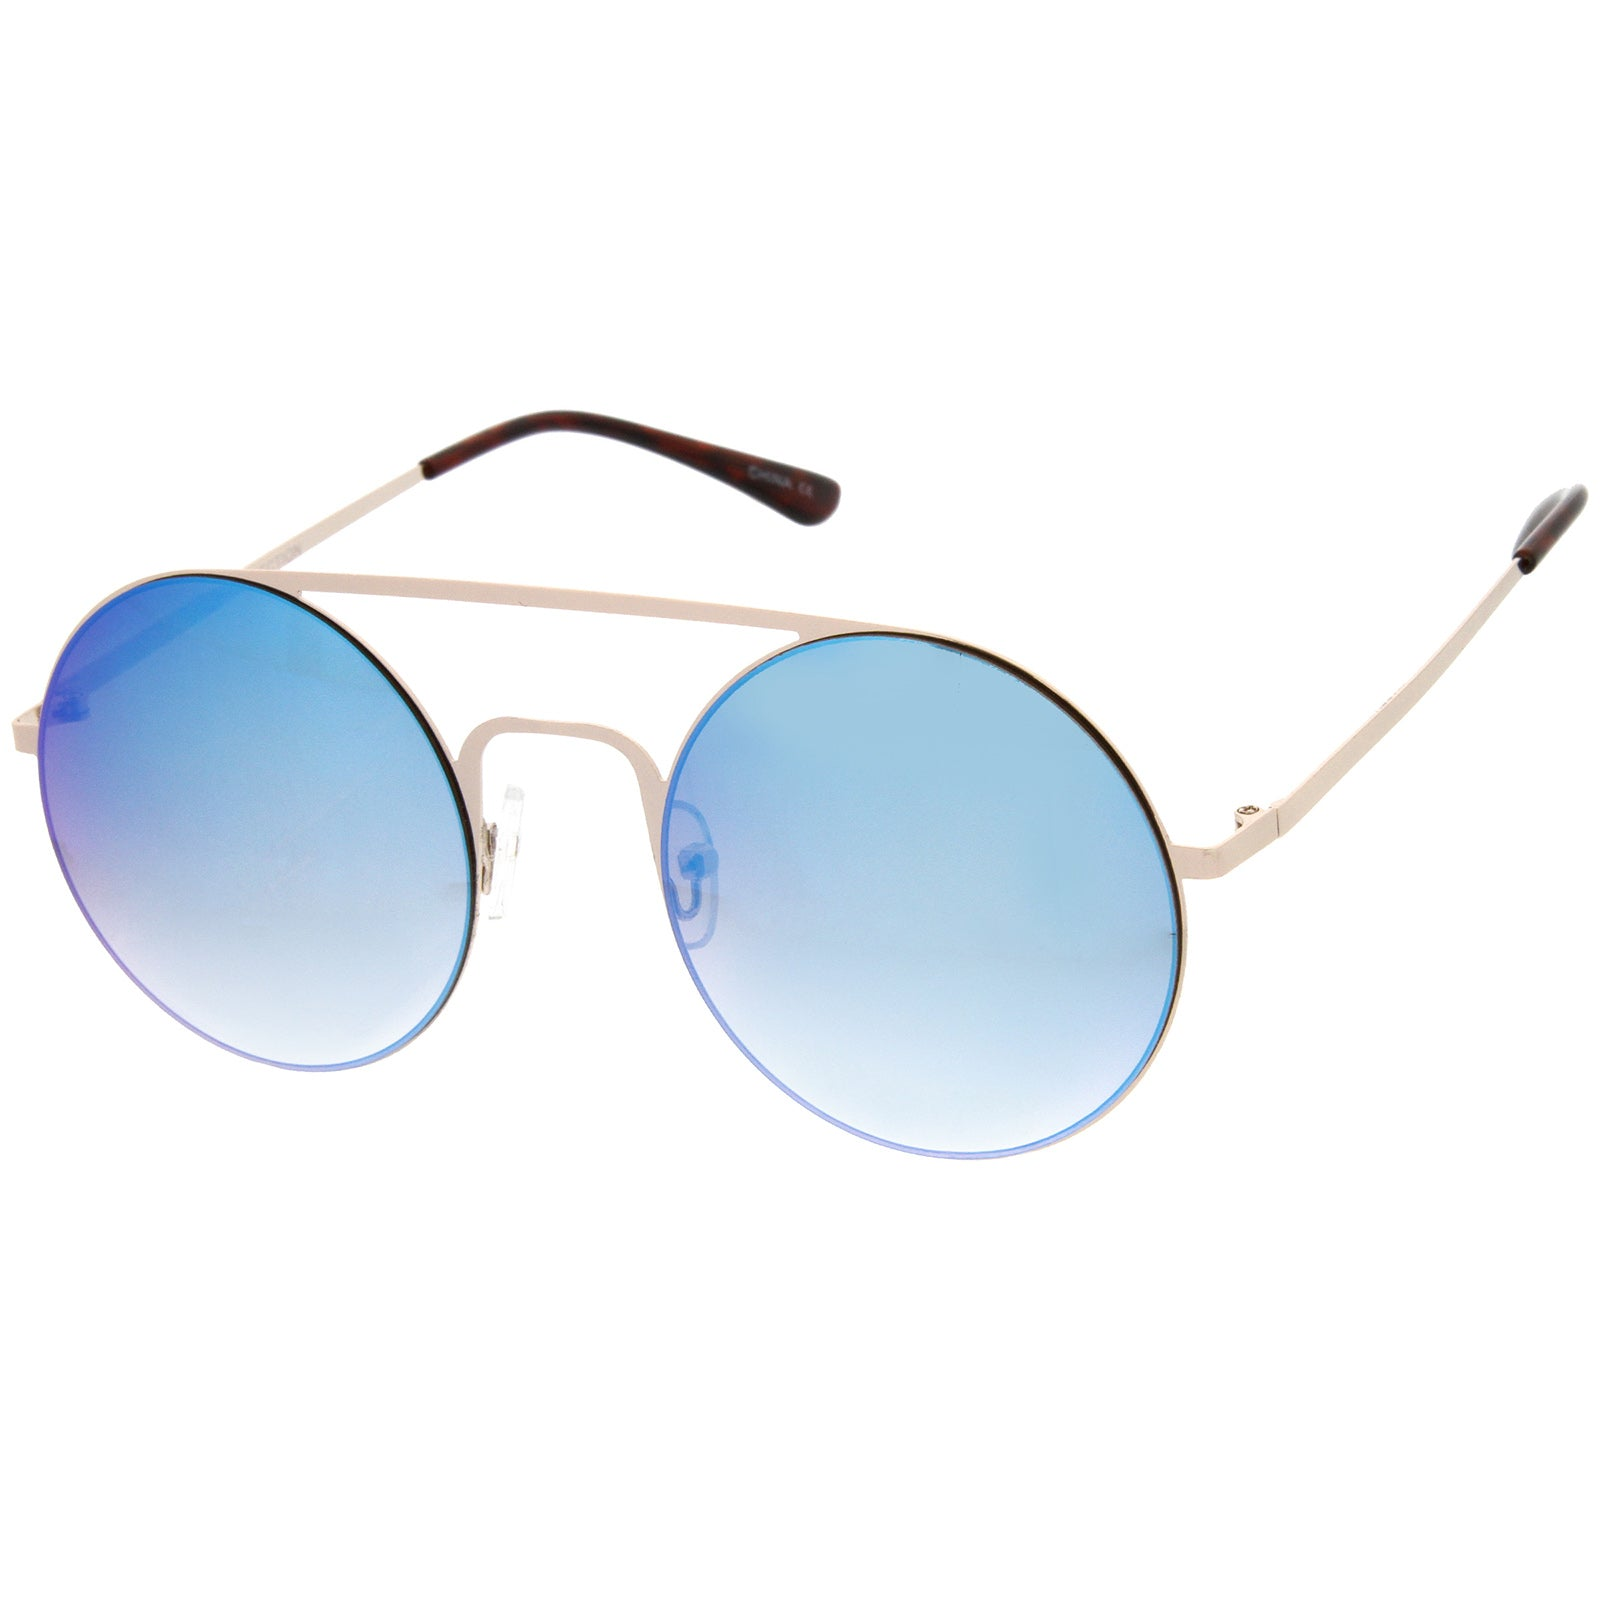 Modern Slim Double Nose Bridge Colored Mirror Flat Lens Round Sunglasses 53mm - sunglass.la - 2